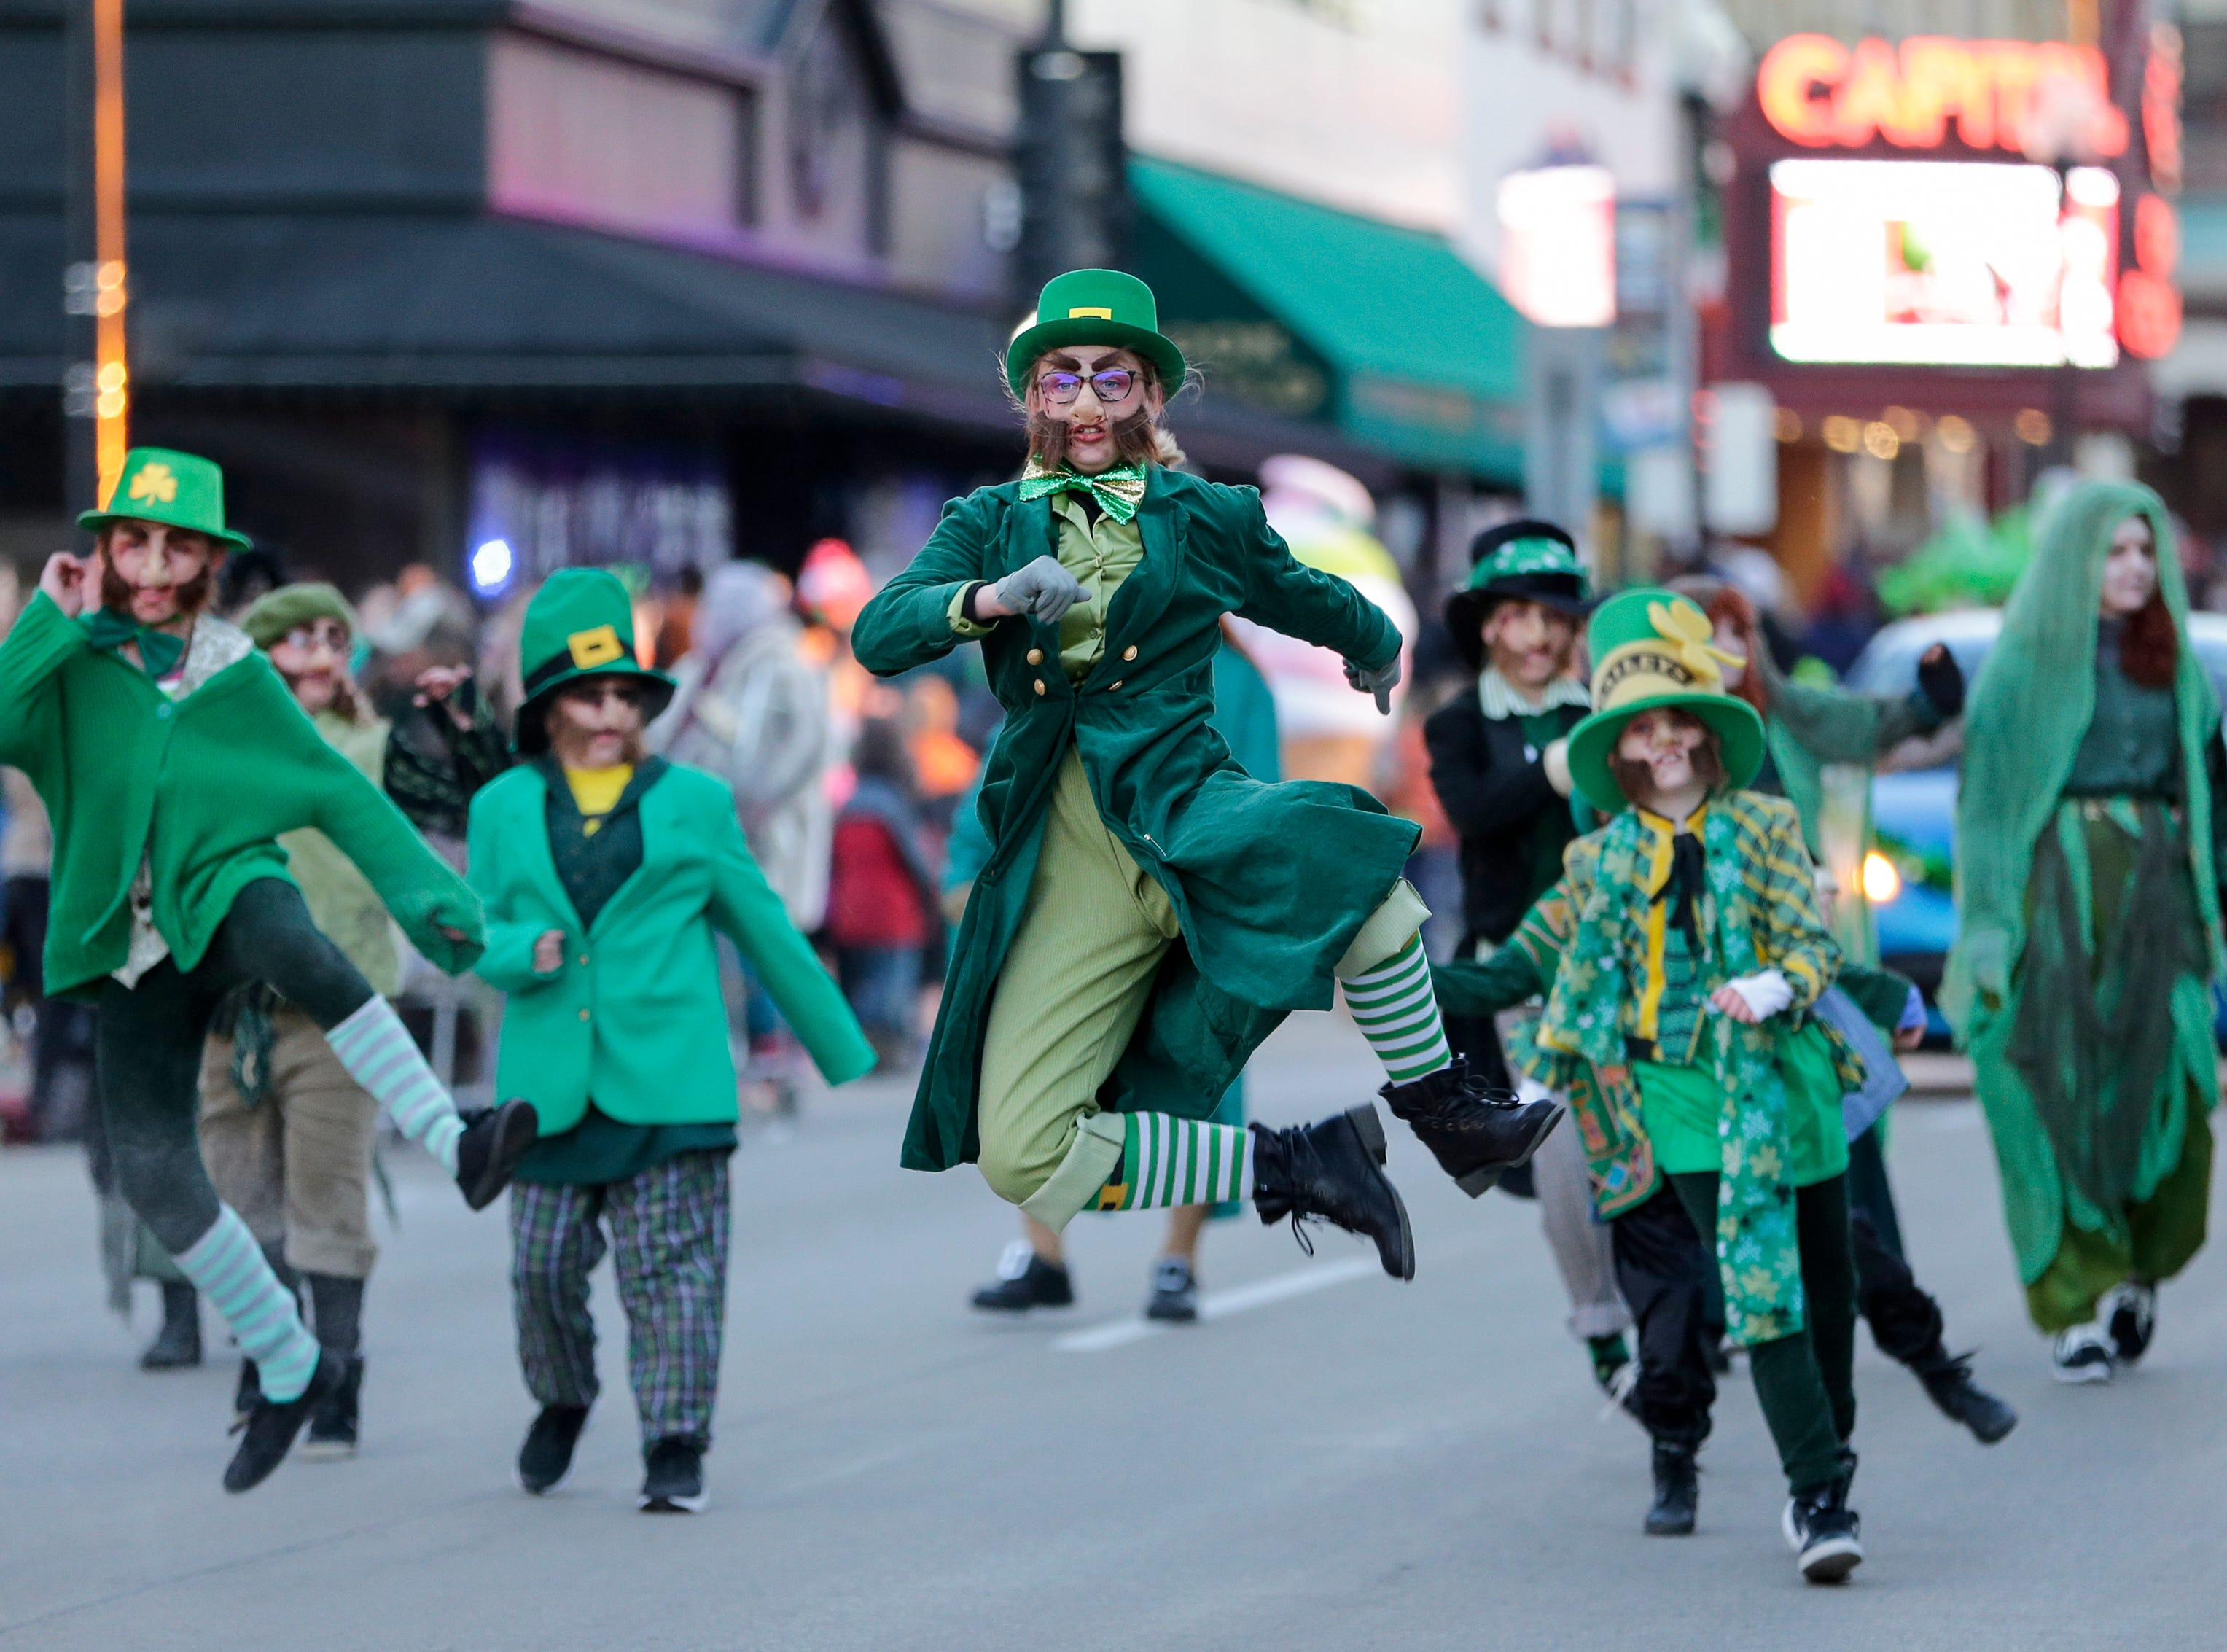 Manitowoc dancers leap on 8th Street during the St. Patrick's Day parade Saturday, Mar. 17, 2018, in Manitowoc, Wis. Josh Clark/USA TODAY NETWORK-Wisconsin